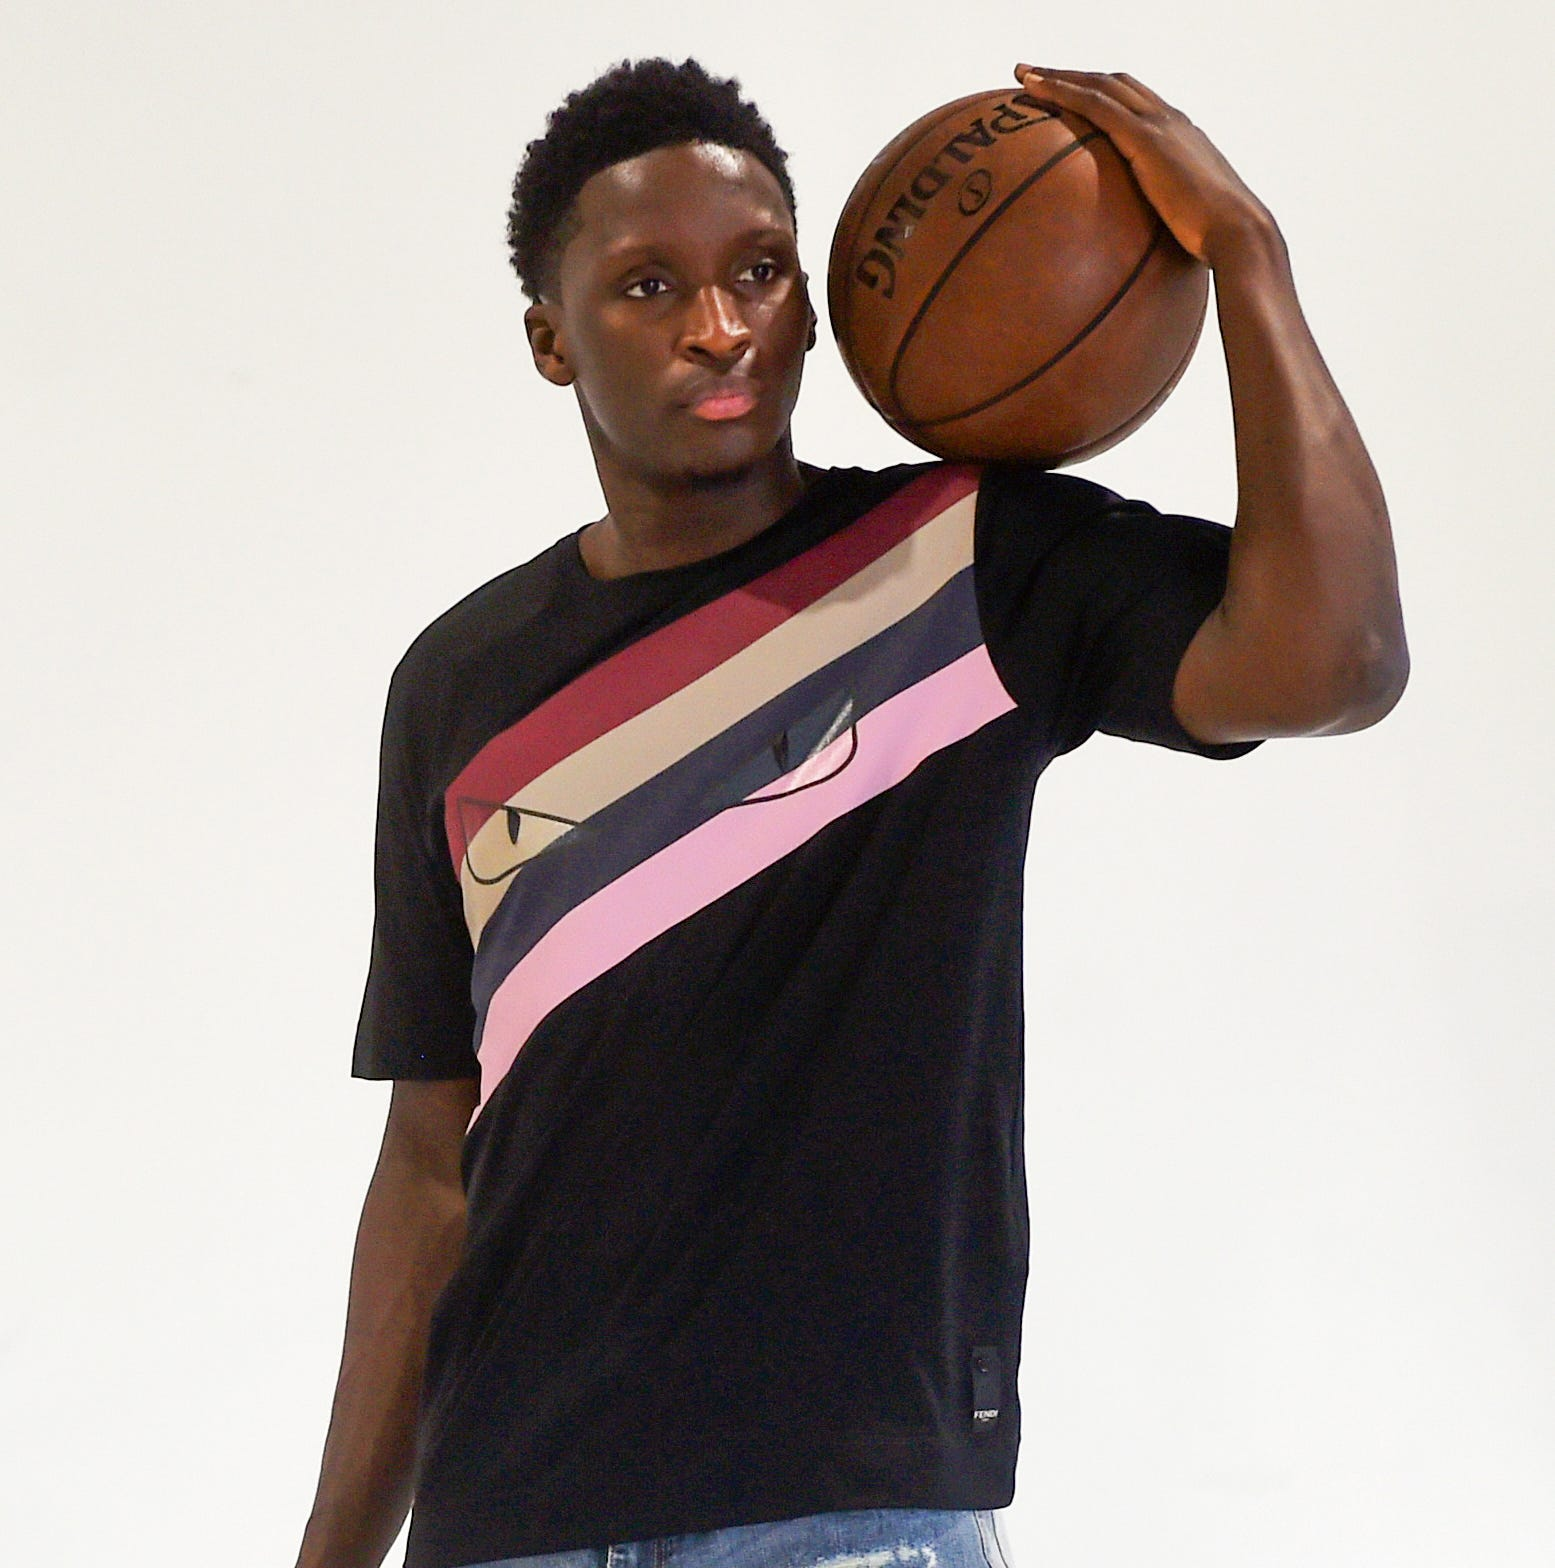 Pacers' Victor Oladipo has his sights set on a new team: The Monstars